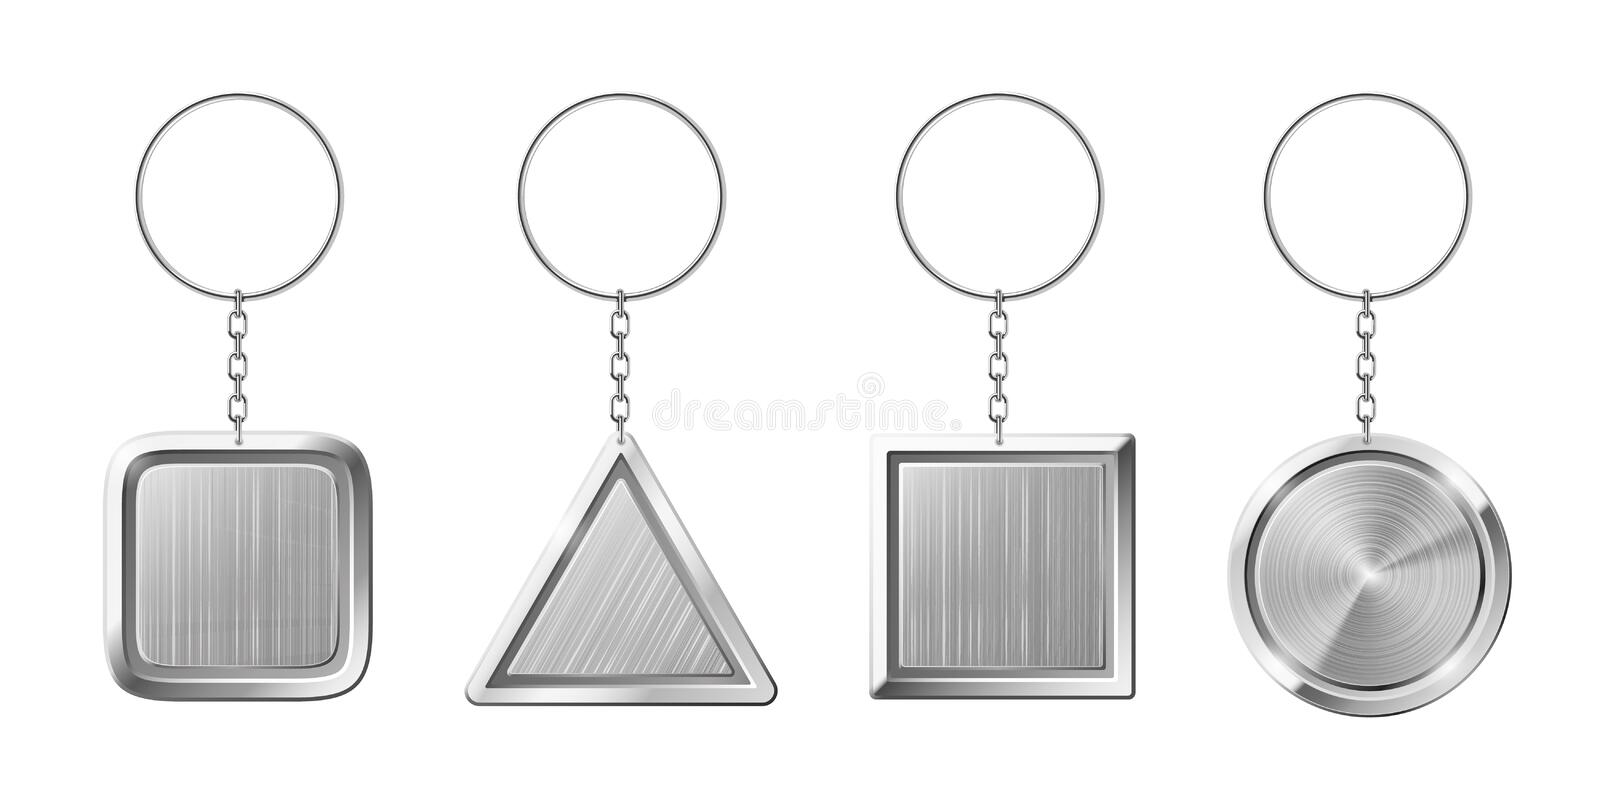 Key ring with silver pendant holder. Blank keychain with ring for keys. Isolated key chains for home or car keys royalty free illustration